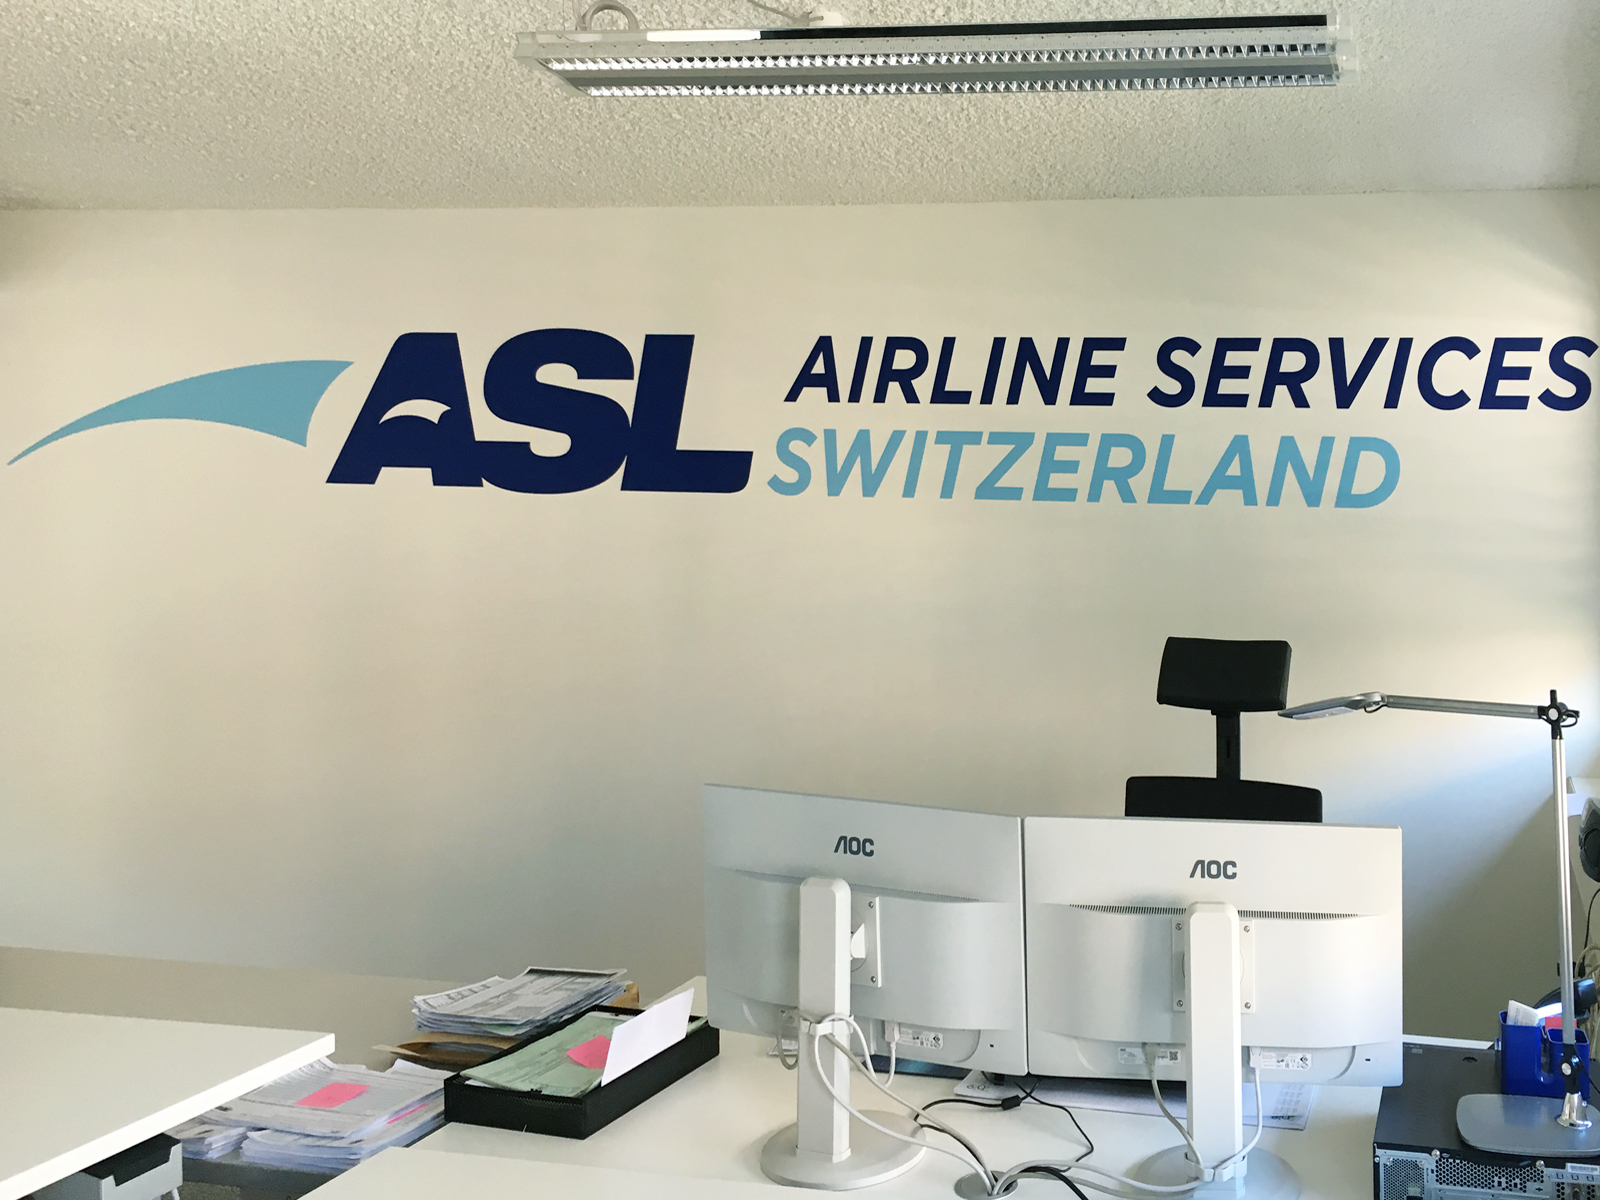 1600 x 1200 ASL airline services switzerland